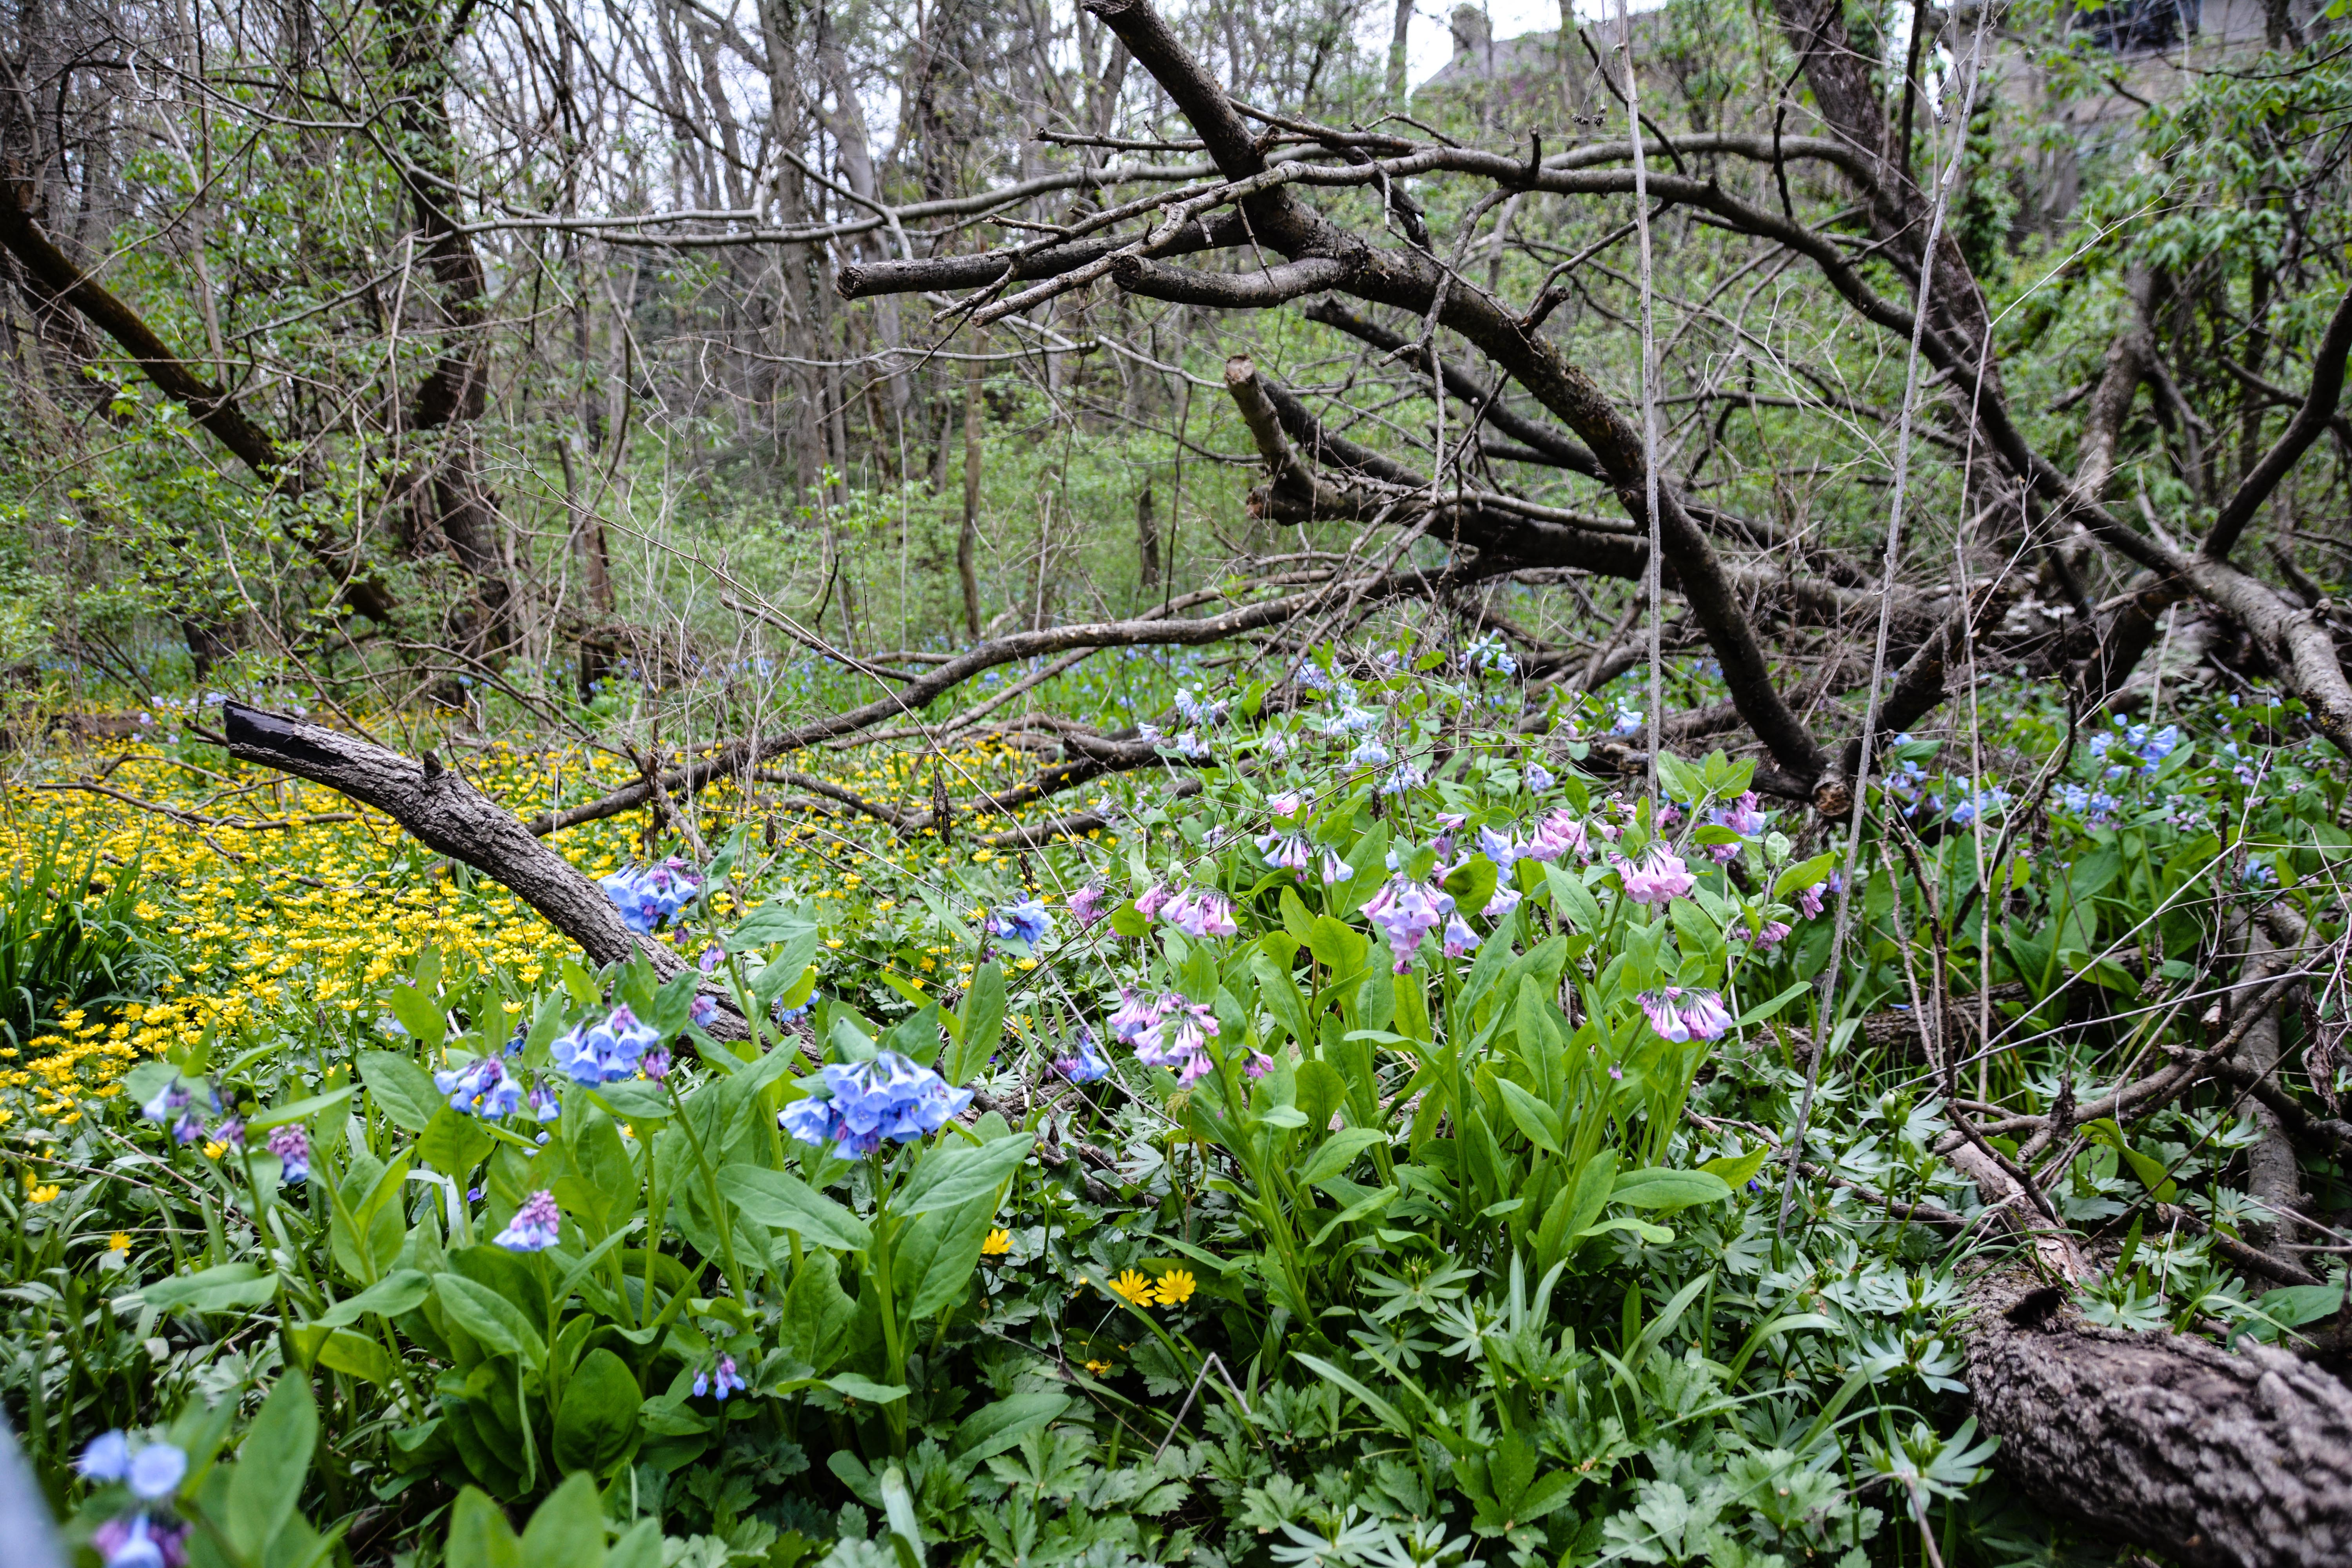 Virginia bluebells- Mertensia virginica ,Spring in Ohio, Thinking Outside the Boxwood